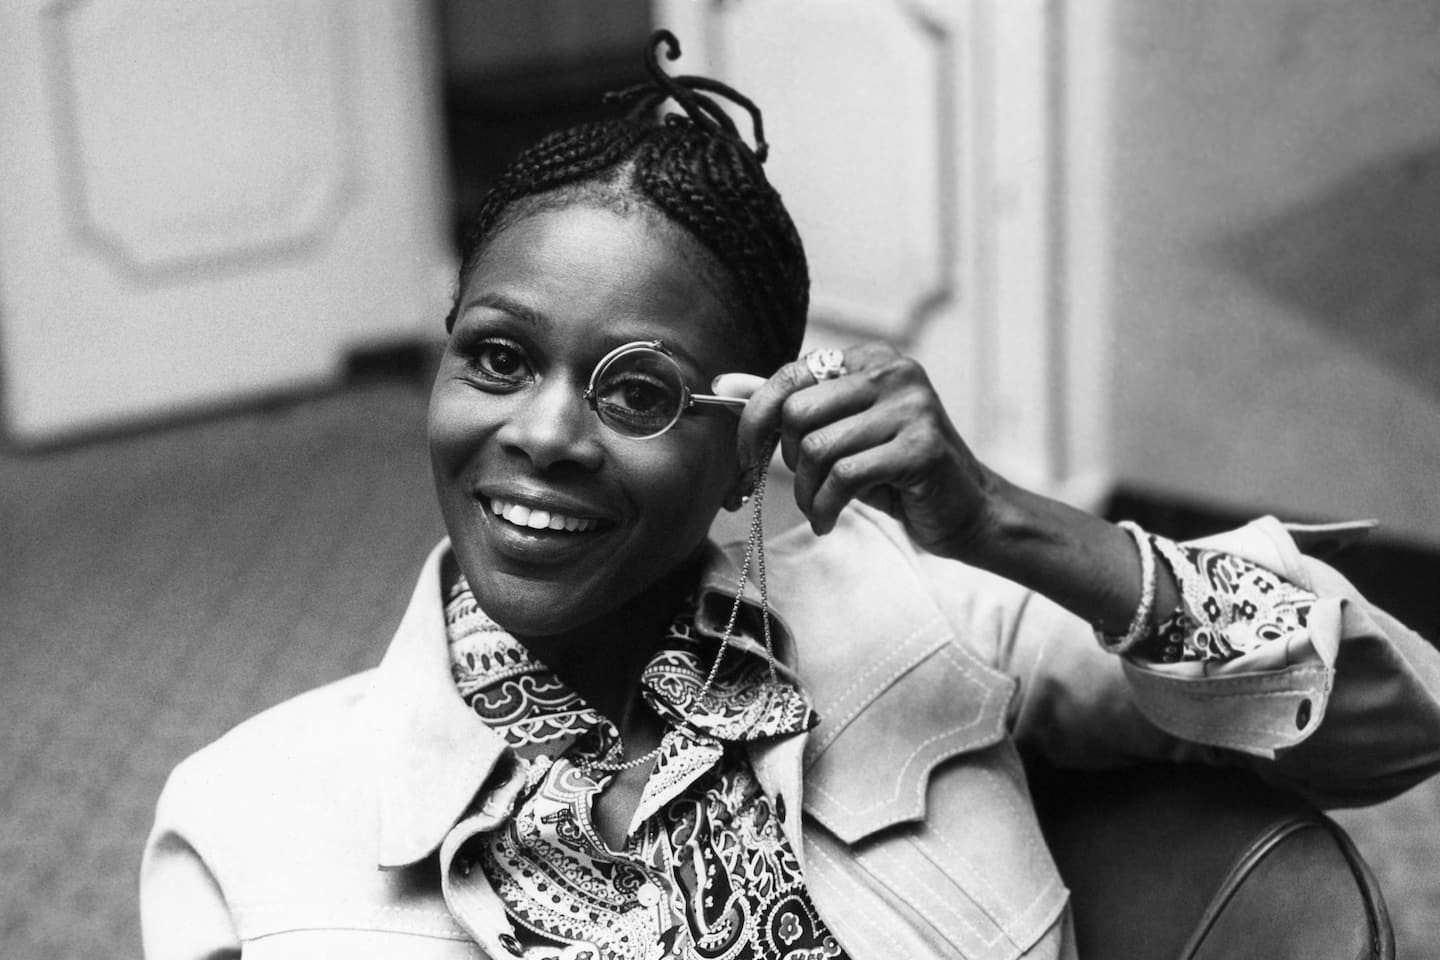 Cicely Tyson, actress who gave electrifying portrayals of resilient Black women, dies at 96